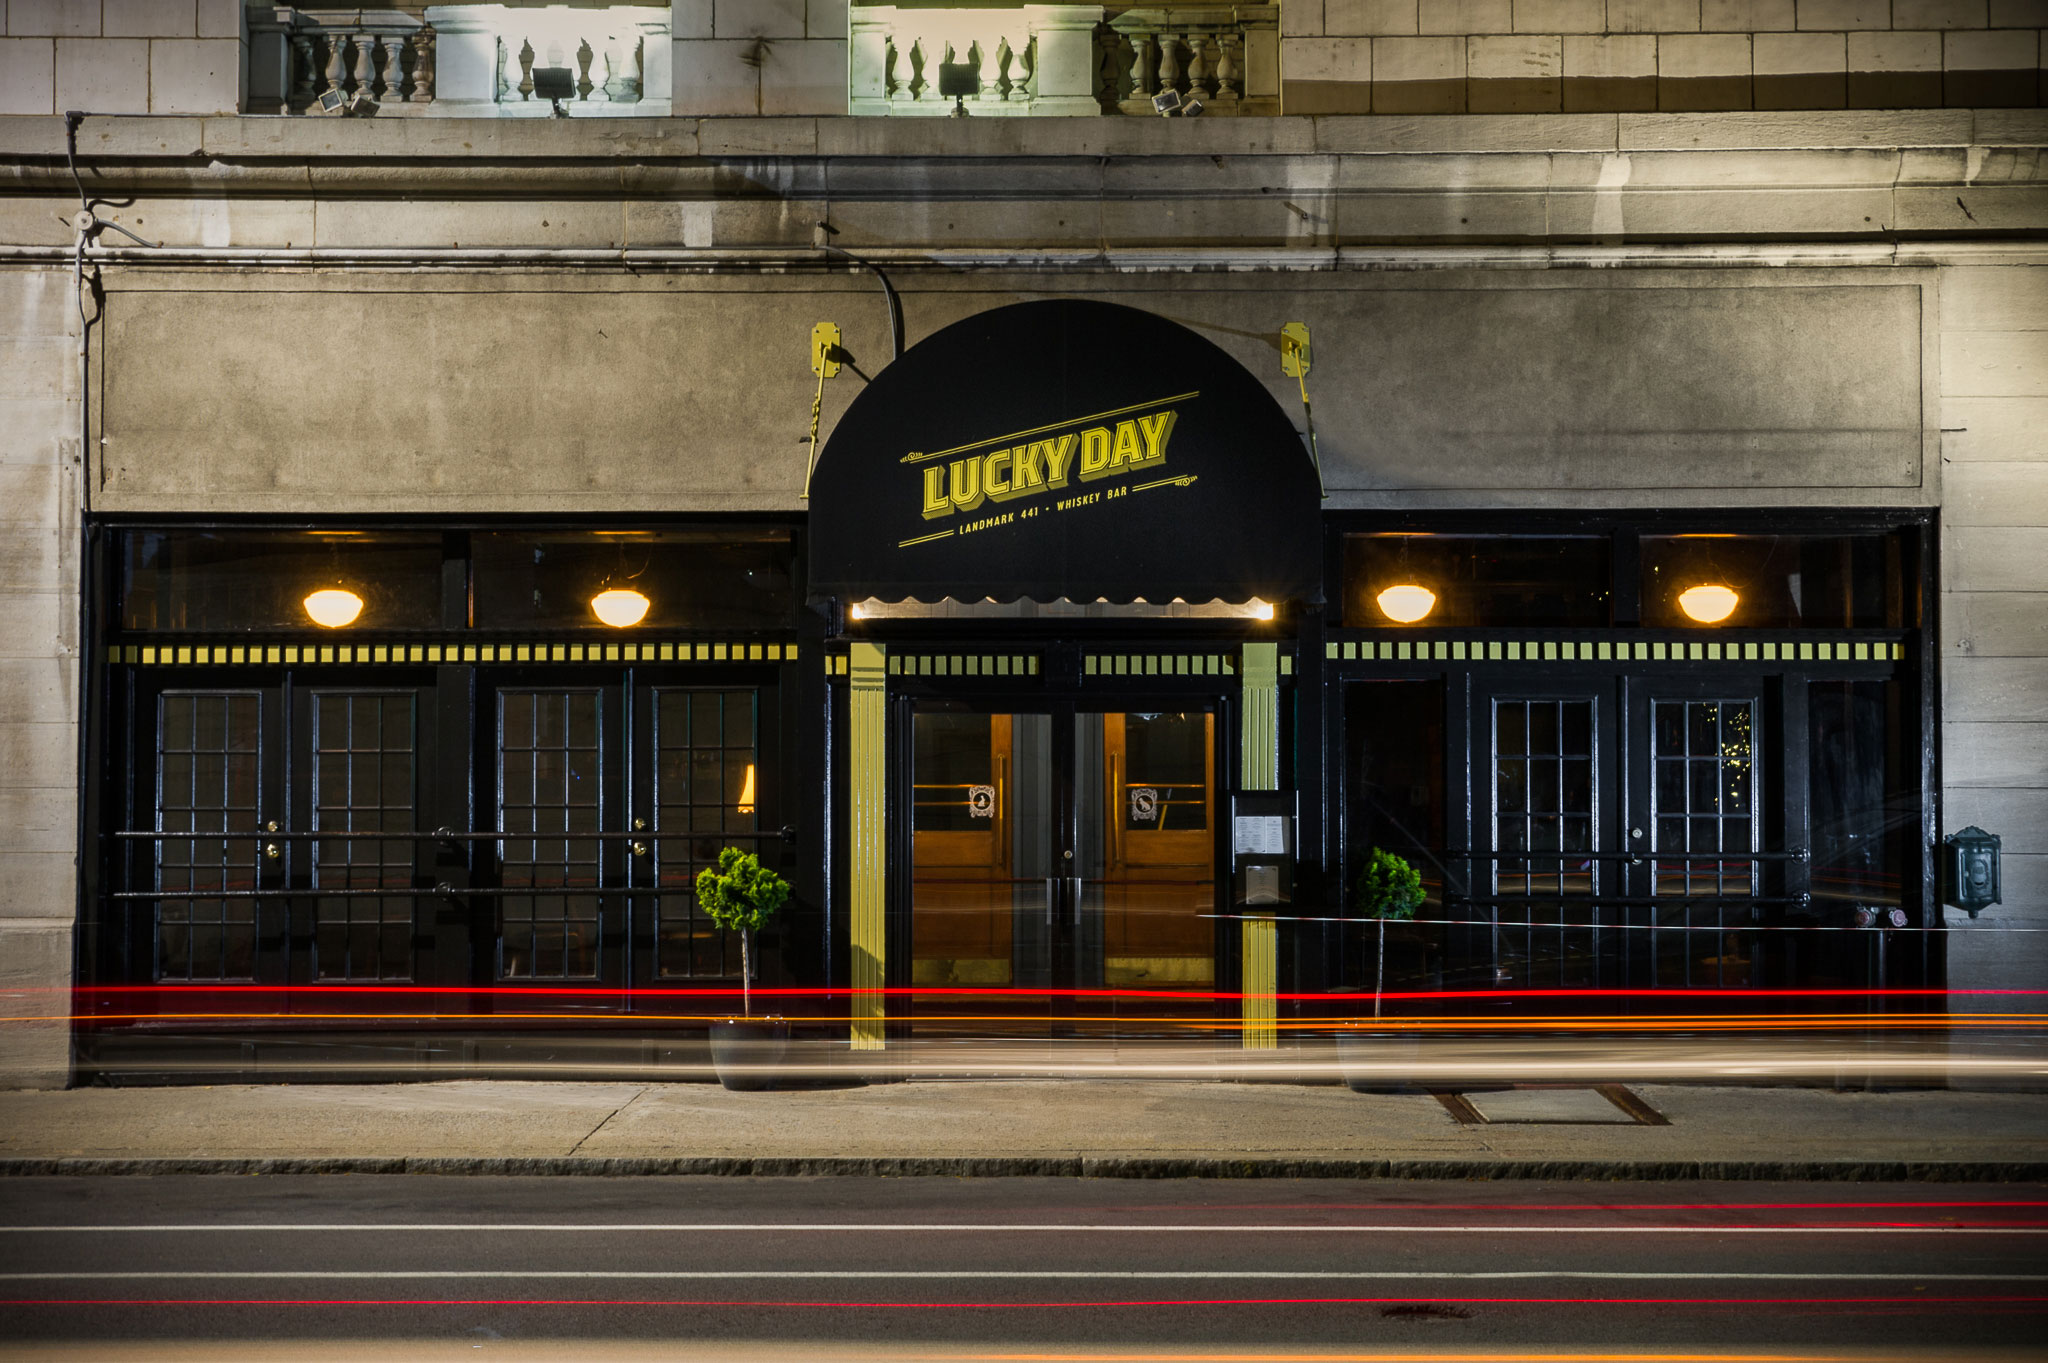 aaron-ingrao-lucky-day-whiskey-bar-cocktail-buffalo-new-york-5807-Edit-Edit-Edit.jpg